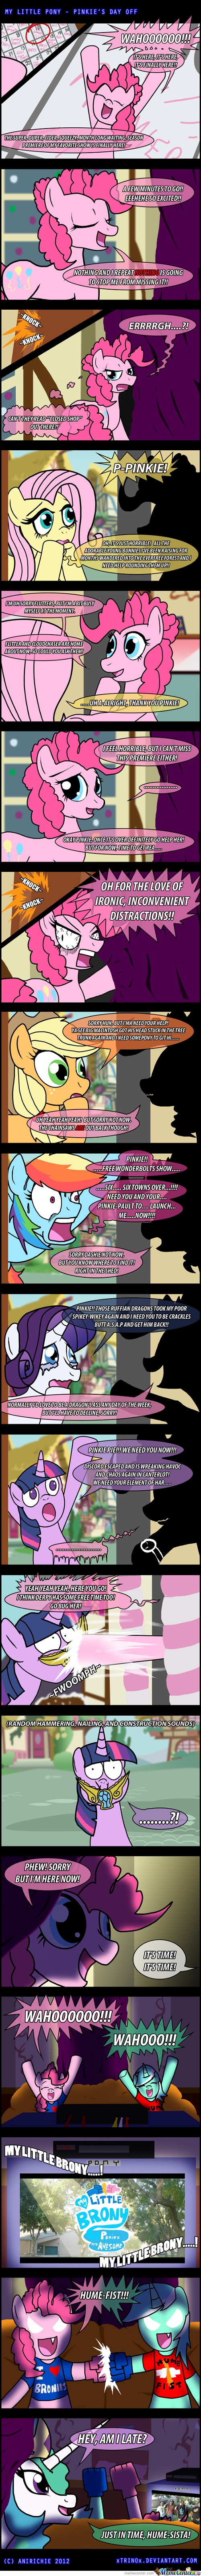 Meanwhile, In An Alternate Universe - By Anirichie